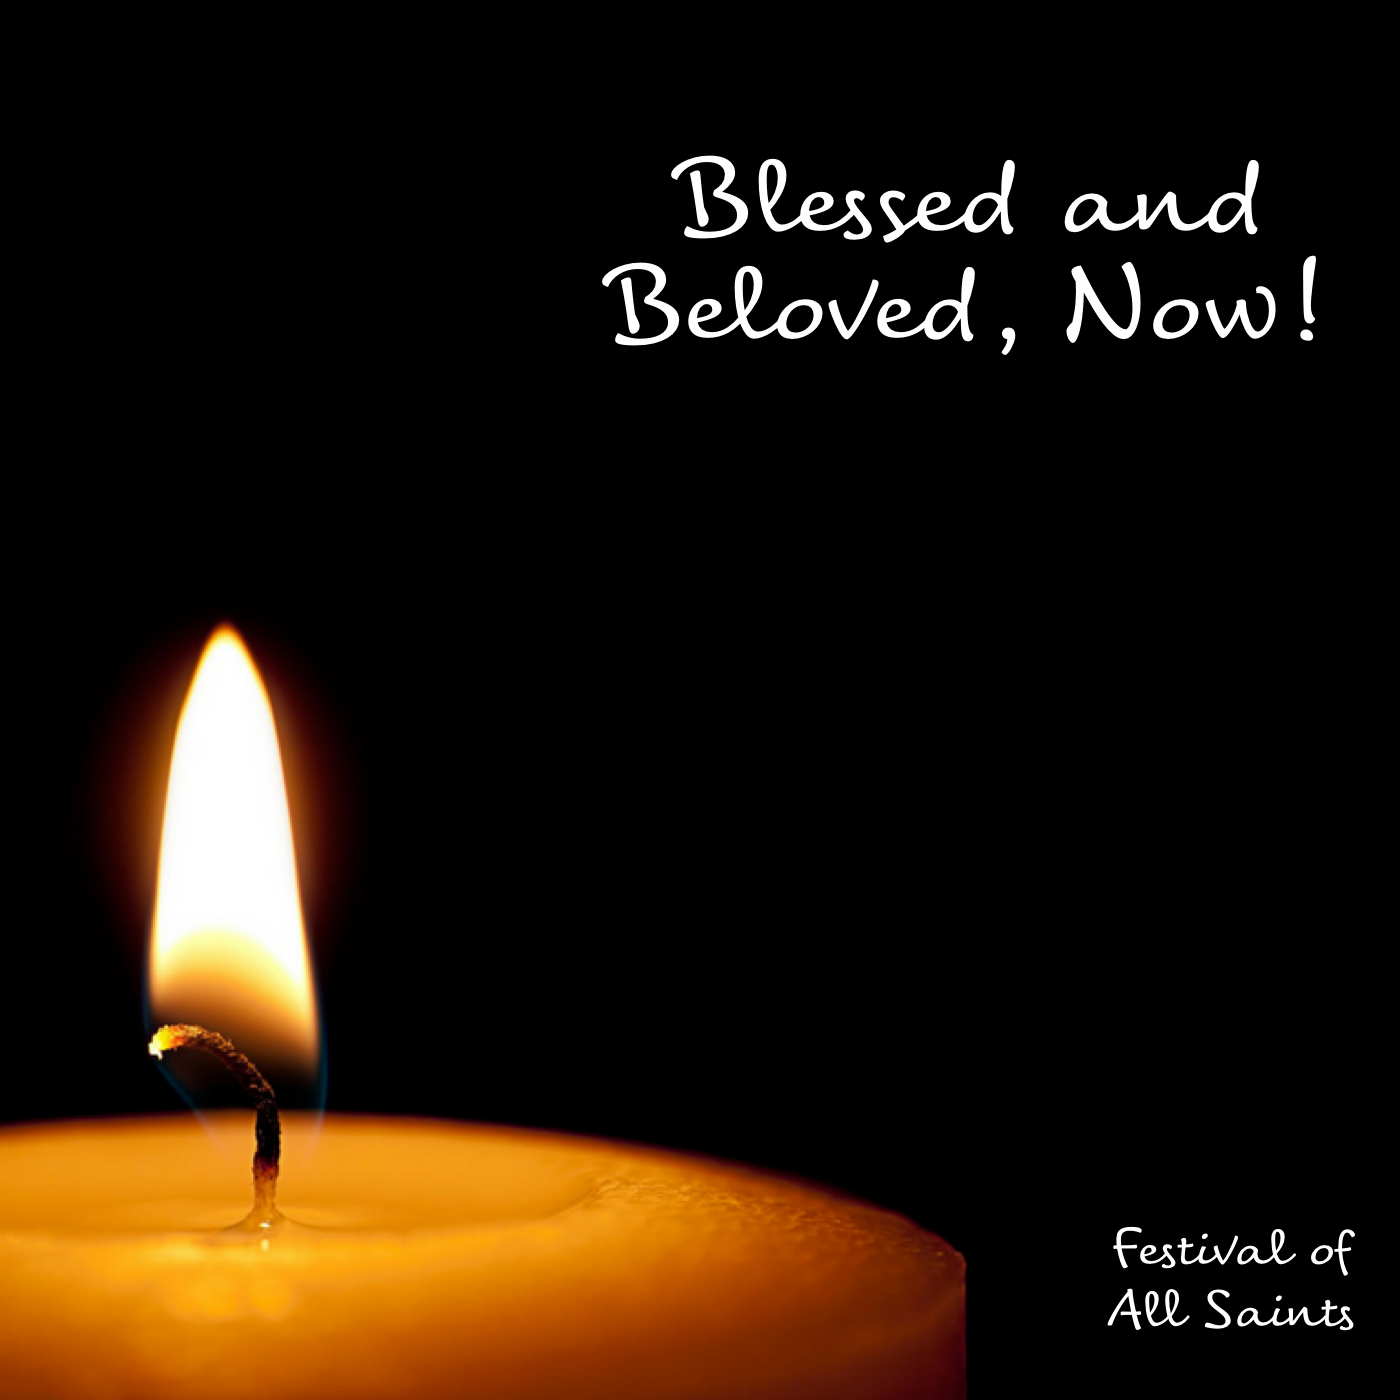 """Festival of All Saints: """"Blessed and Beloved, Now!"""""""